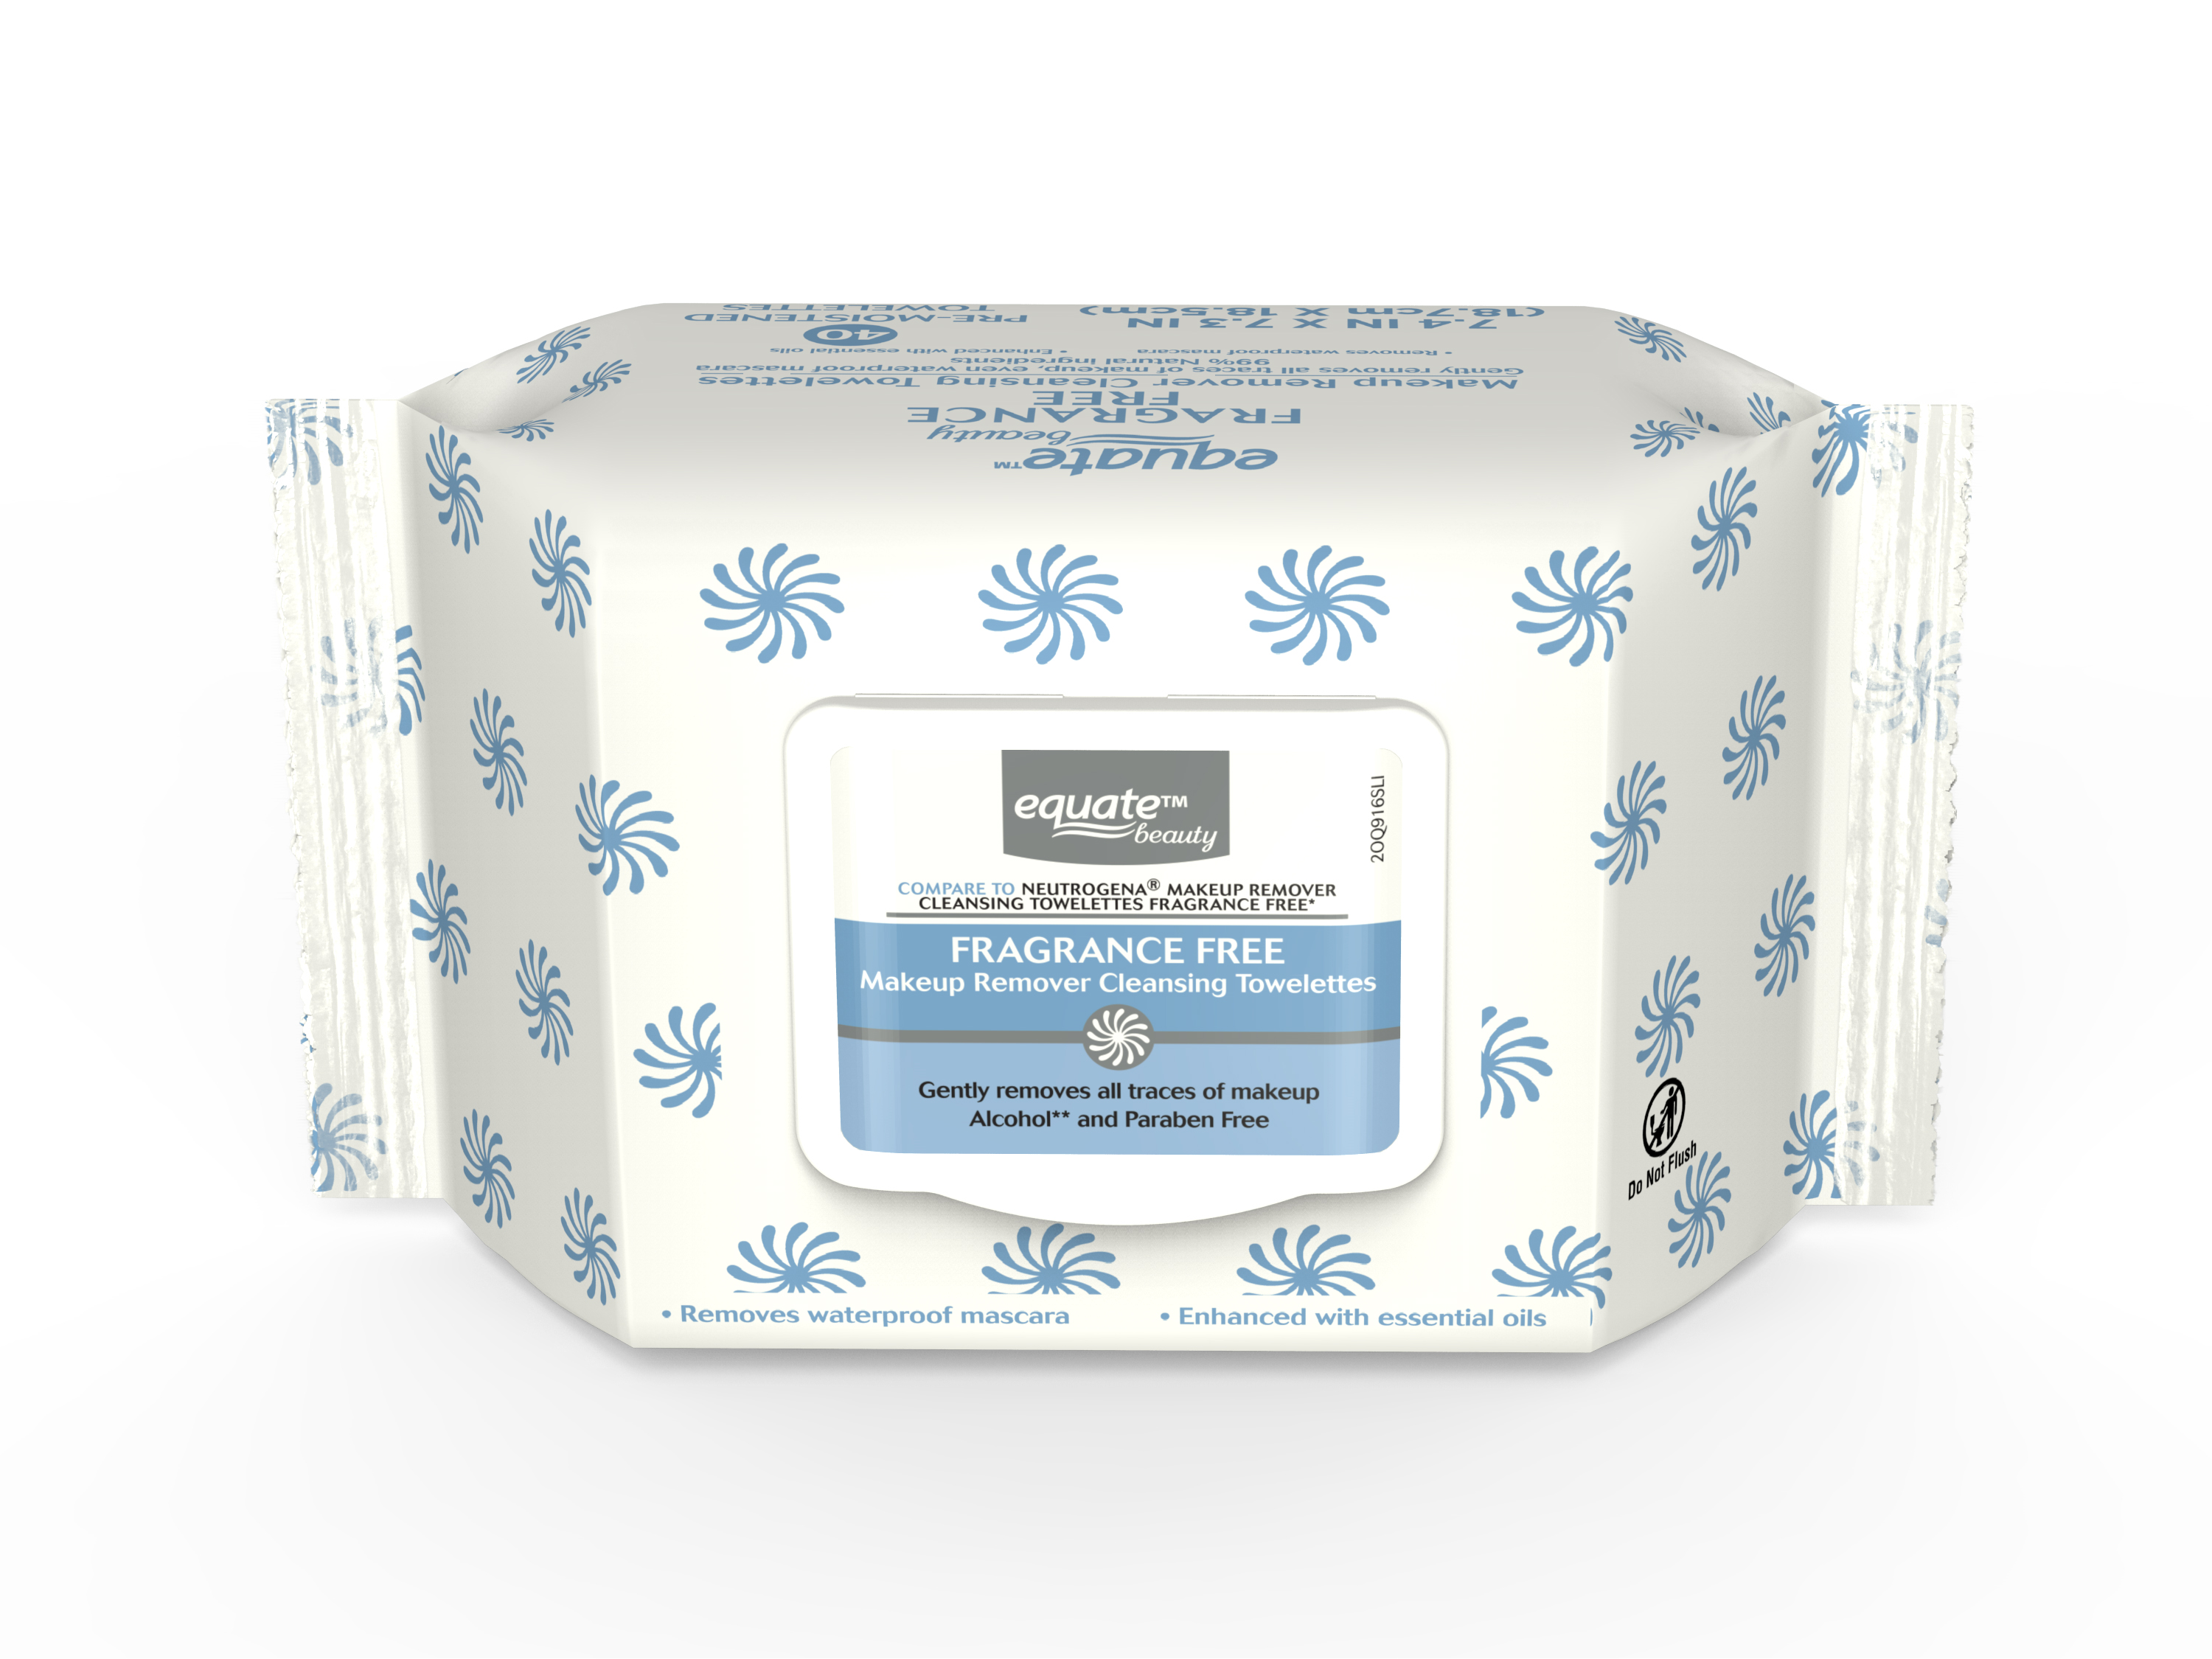 Equate Beauty Fragrance Free Makeup Remover Cleansing Wipes